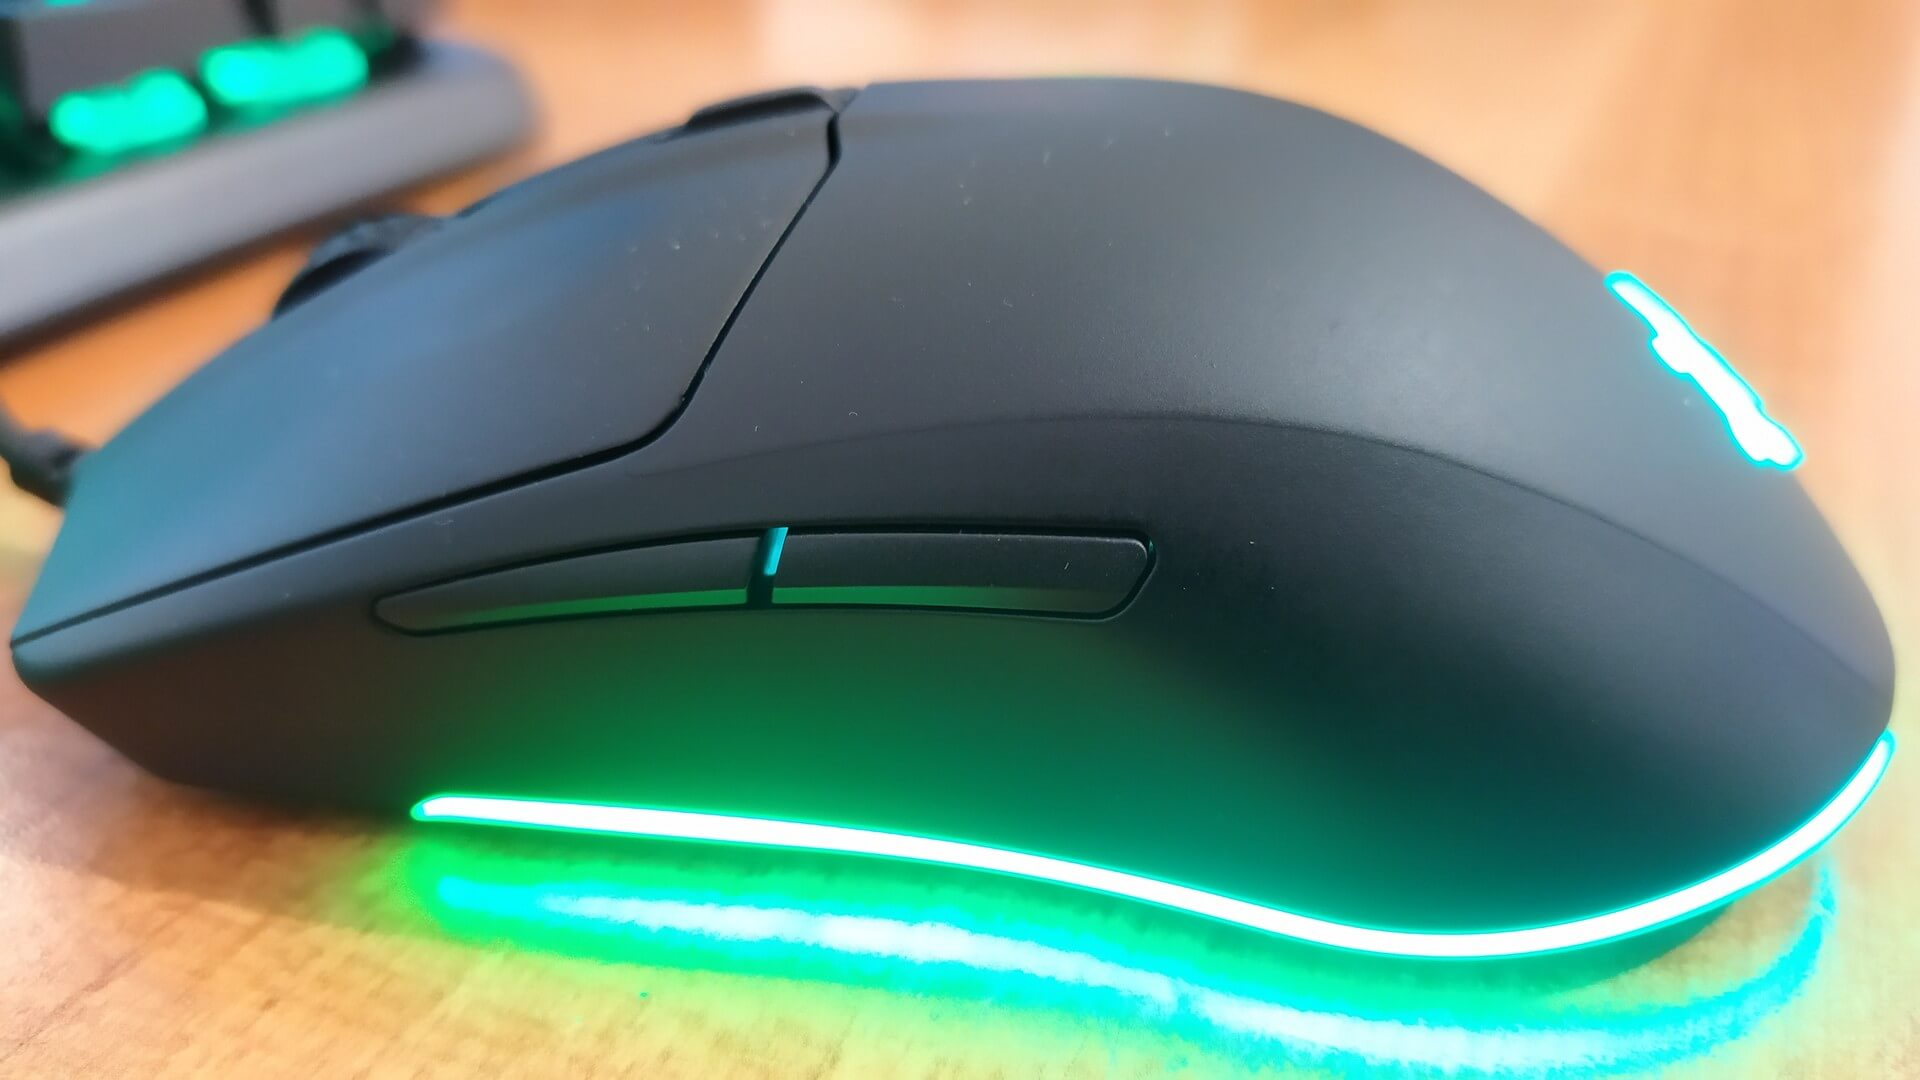 SteelSeries Rival 3 - Review